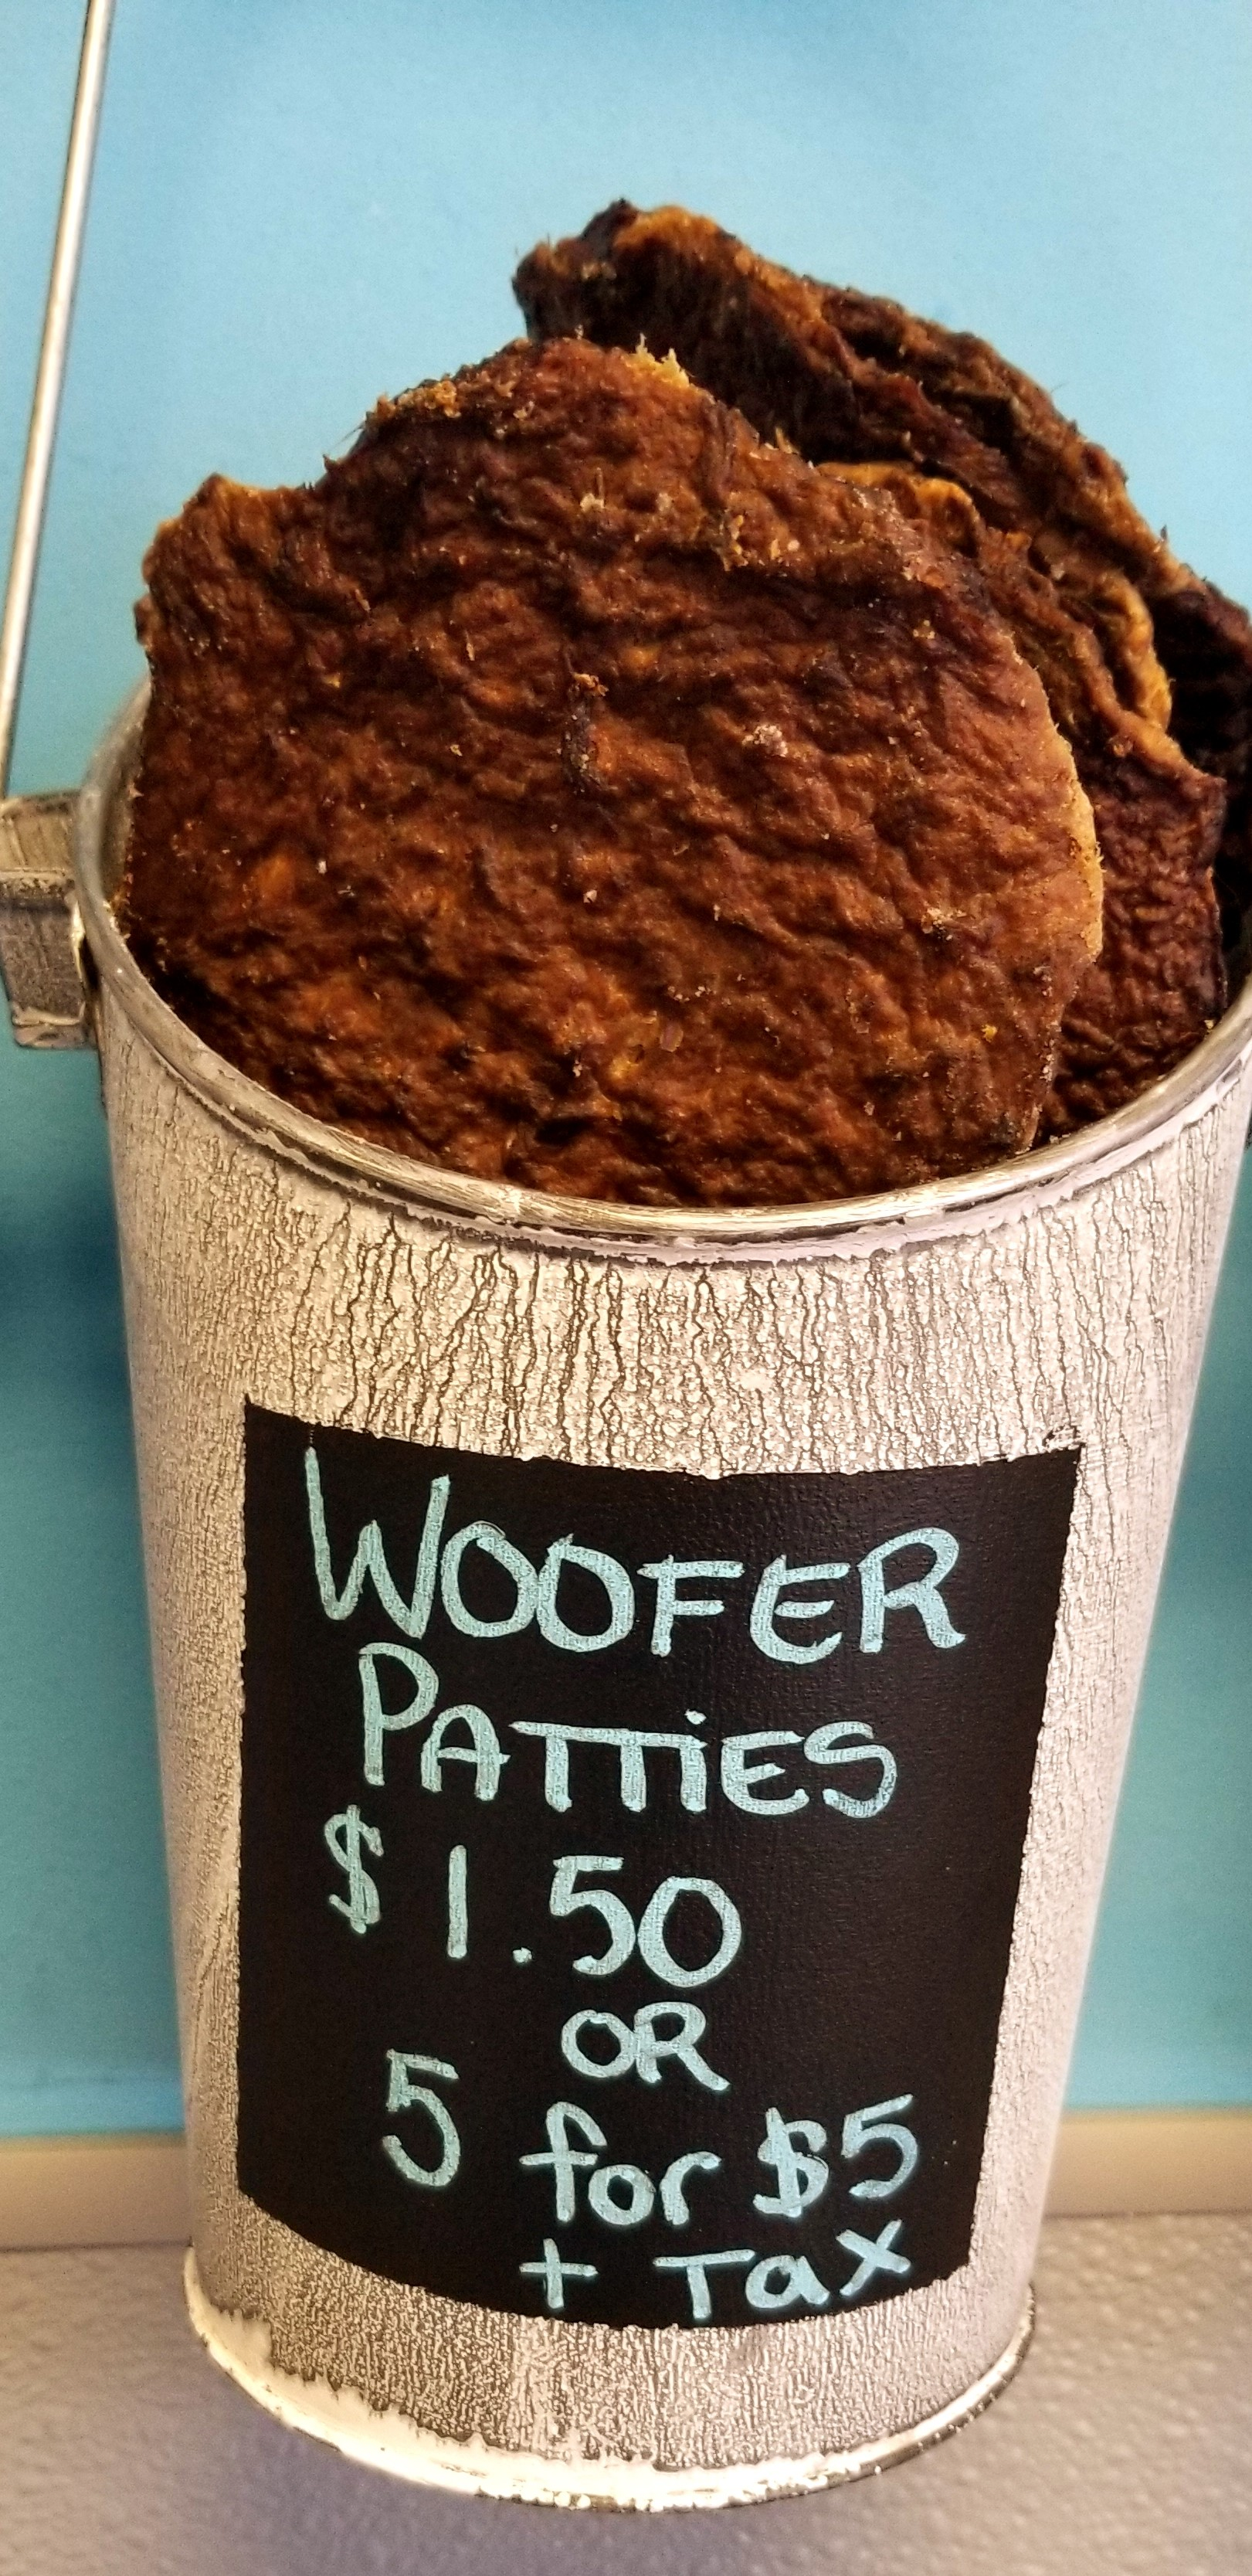 Jones Woofer Patties